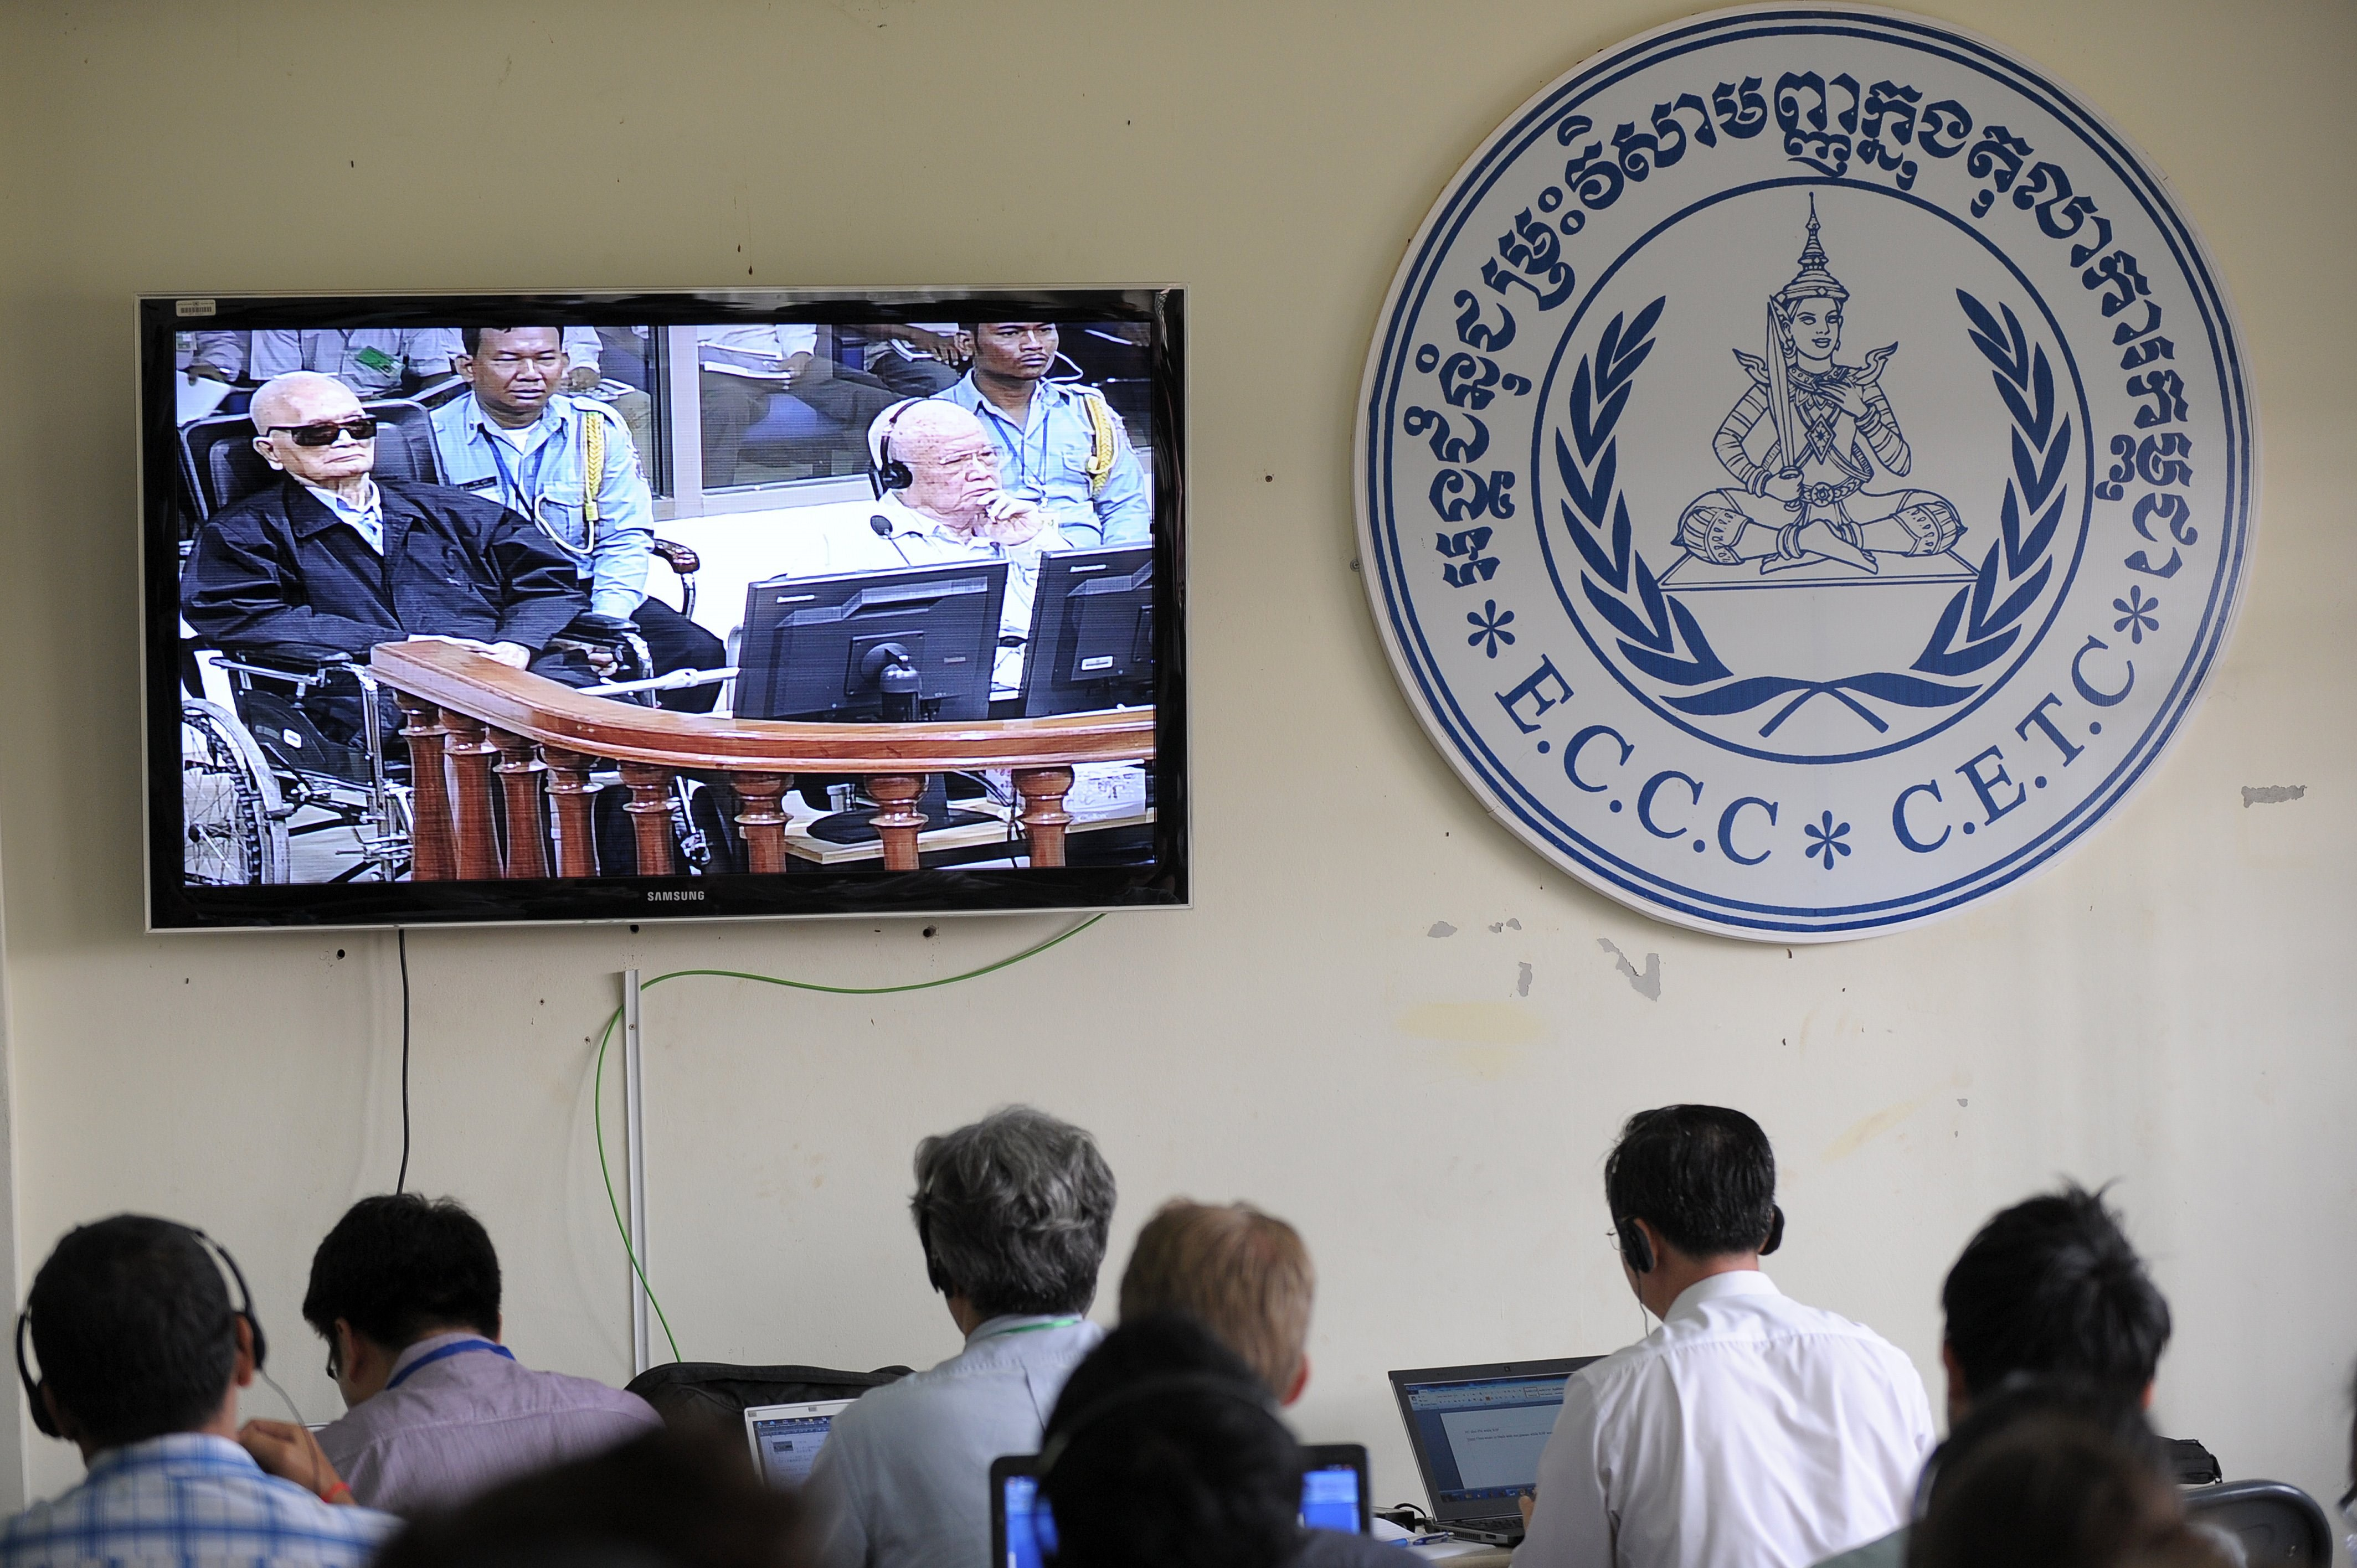 Cambodian and international journalists watch a live video feed showing former Khmer Rouge leader  Brother No. 2  Nuon Chea, left, and former Khmer Rouge head of state Khieu Samphan in the courtroom during their trial at the ECCC in Phnom Penh on Aug. 7, 2014.